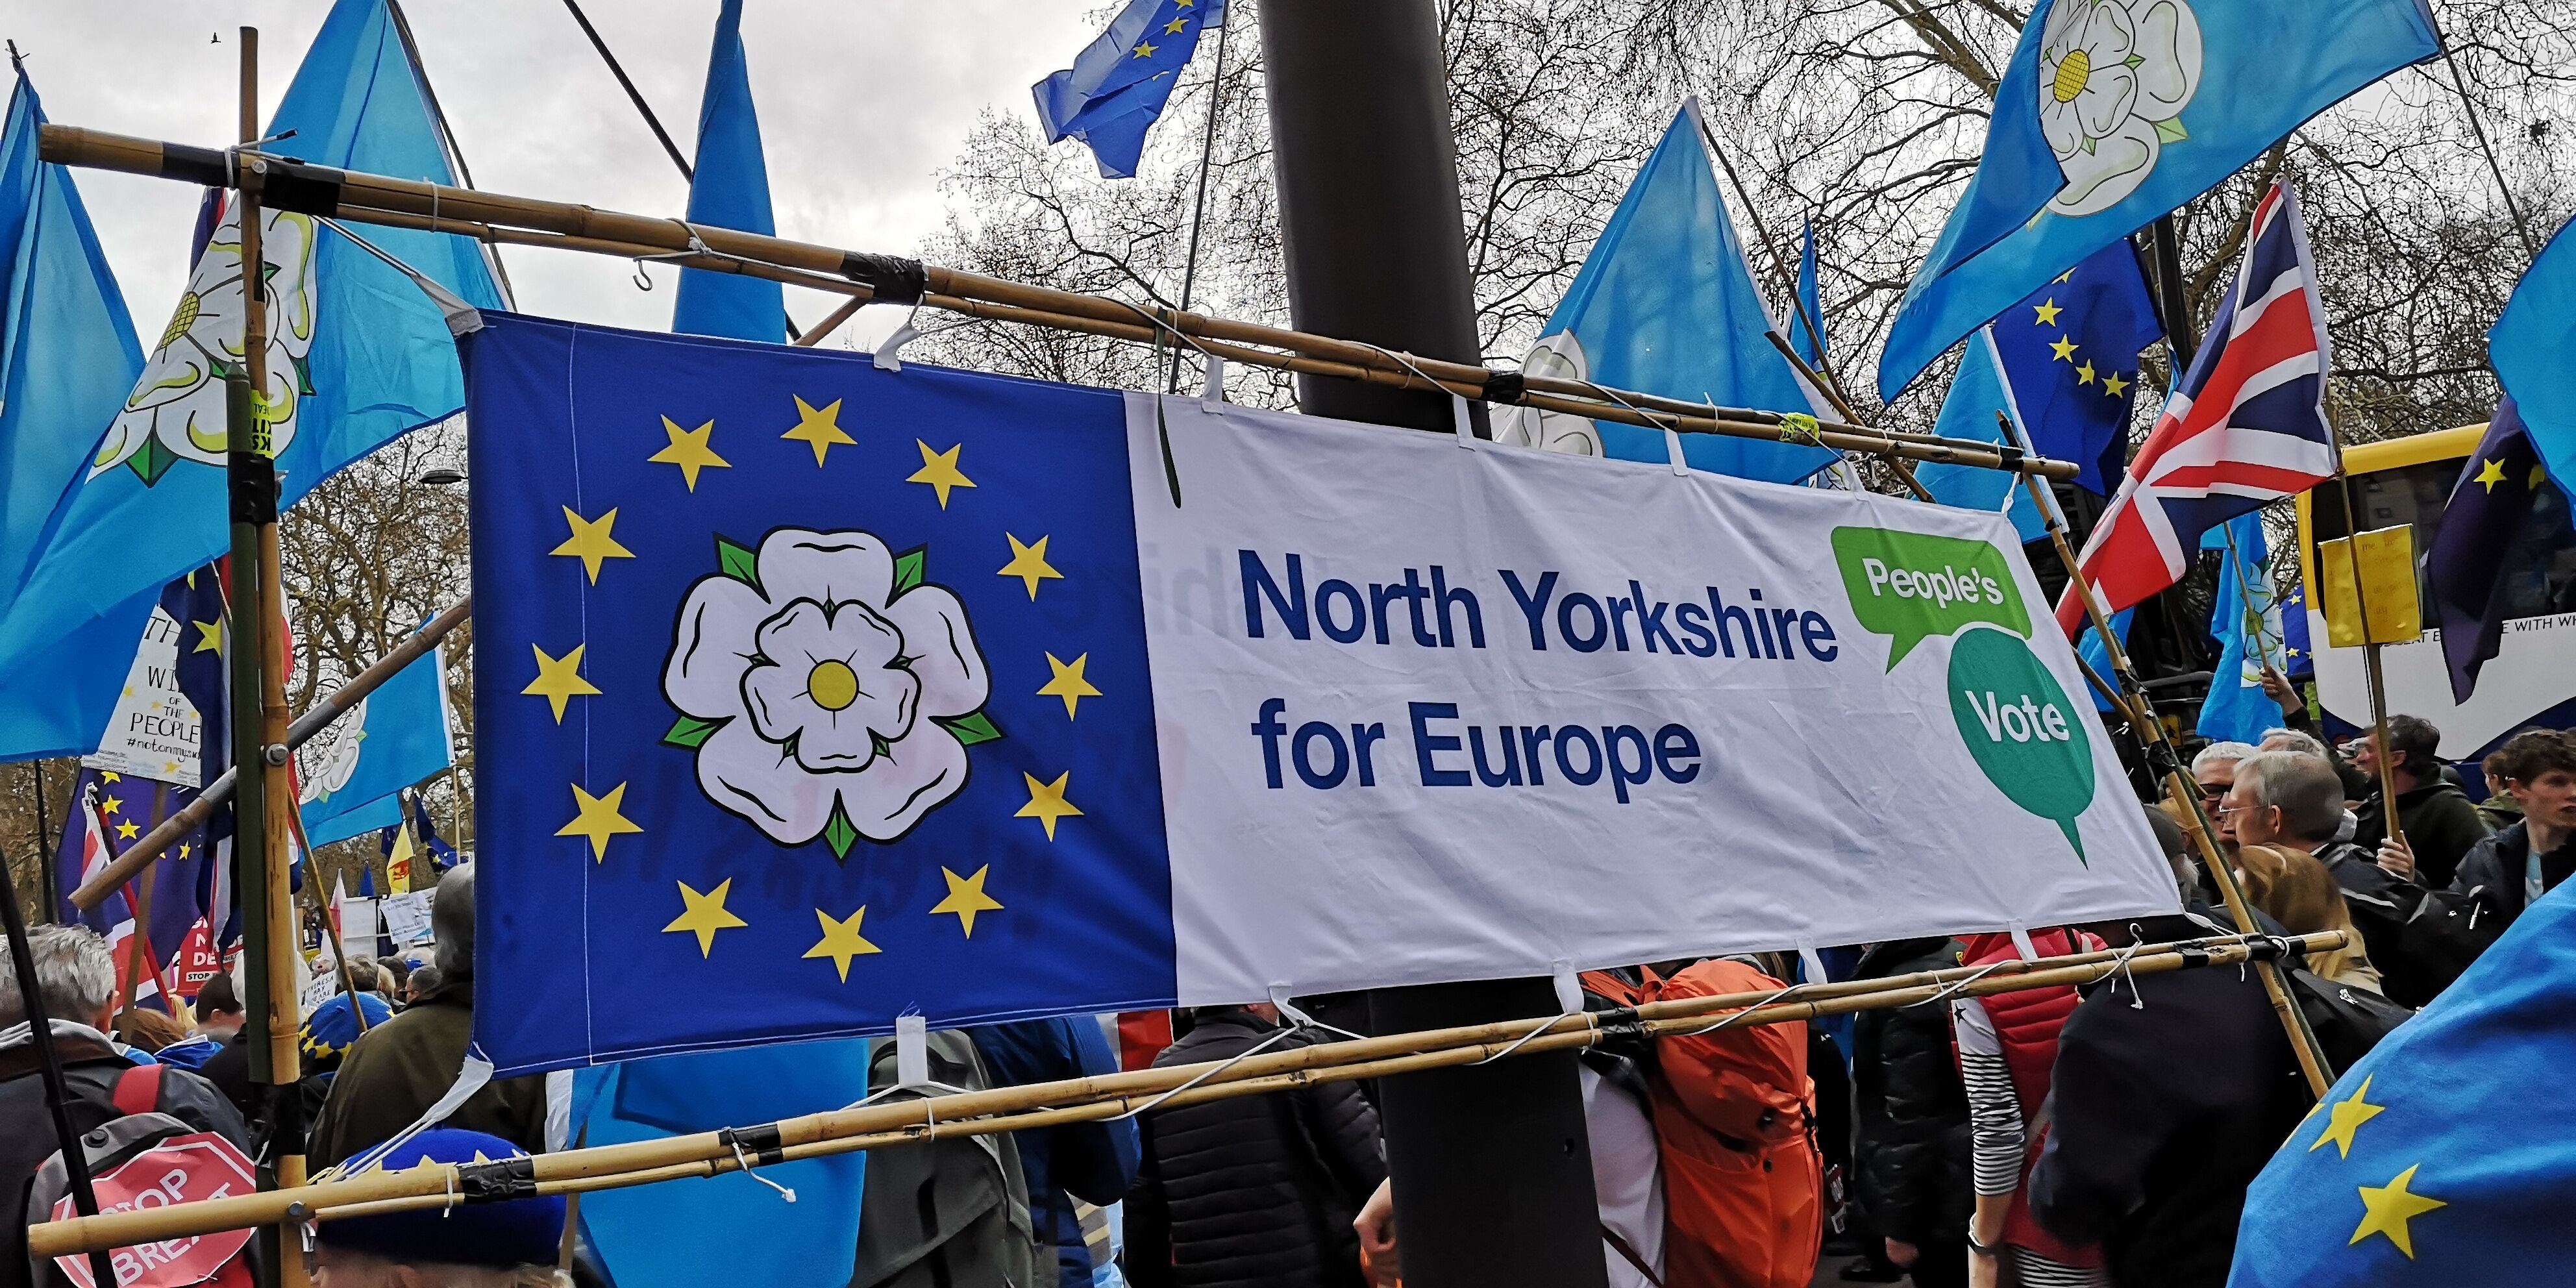 North Yorkshire for Euriope Banner at the march